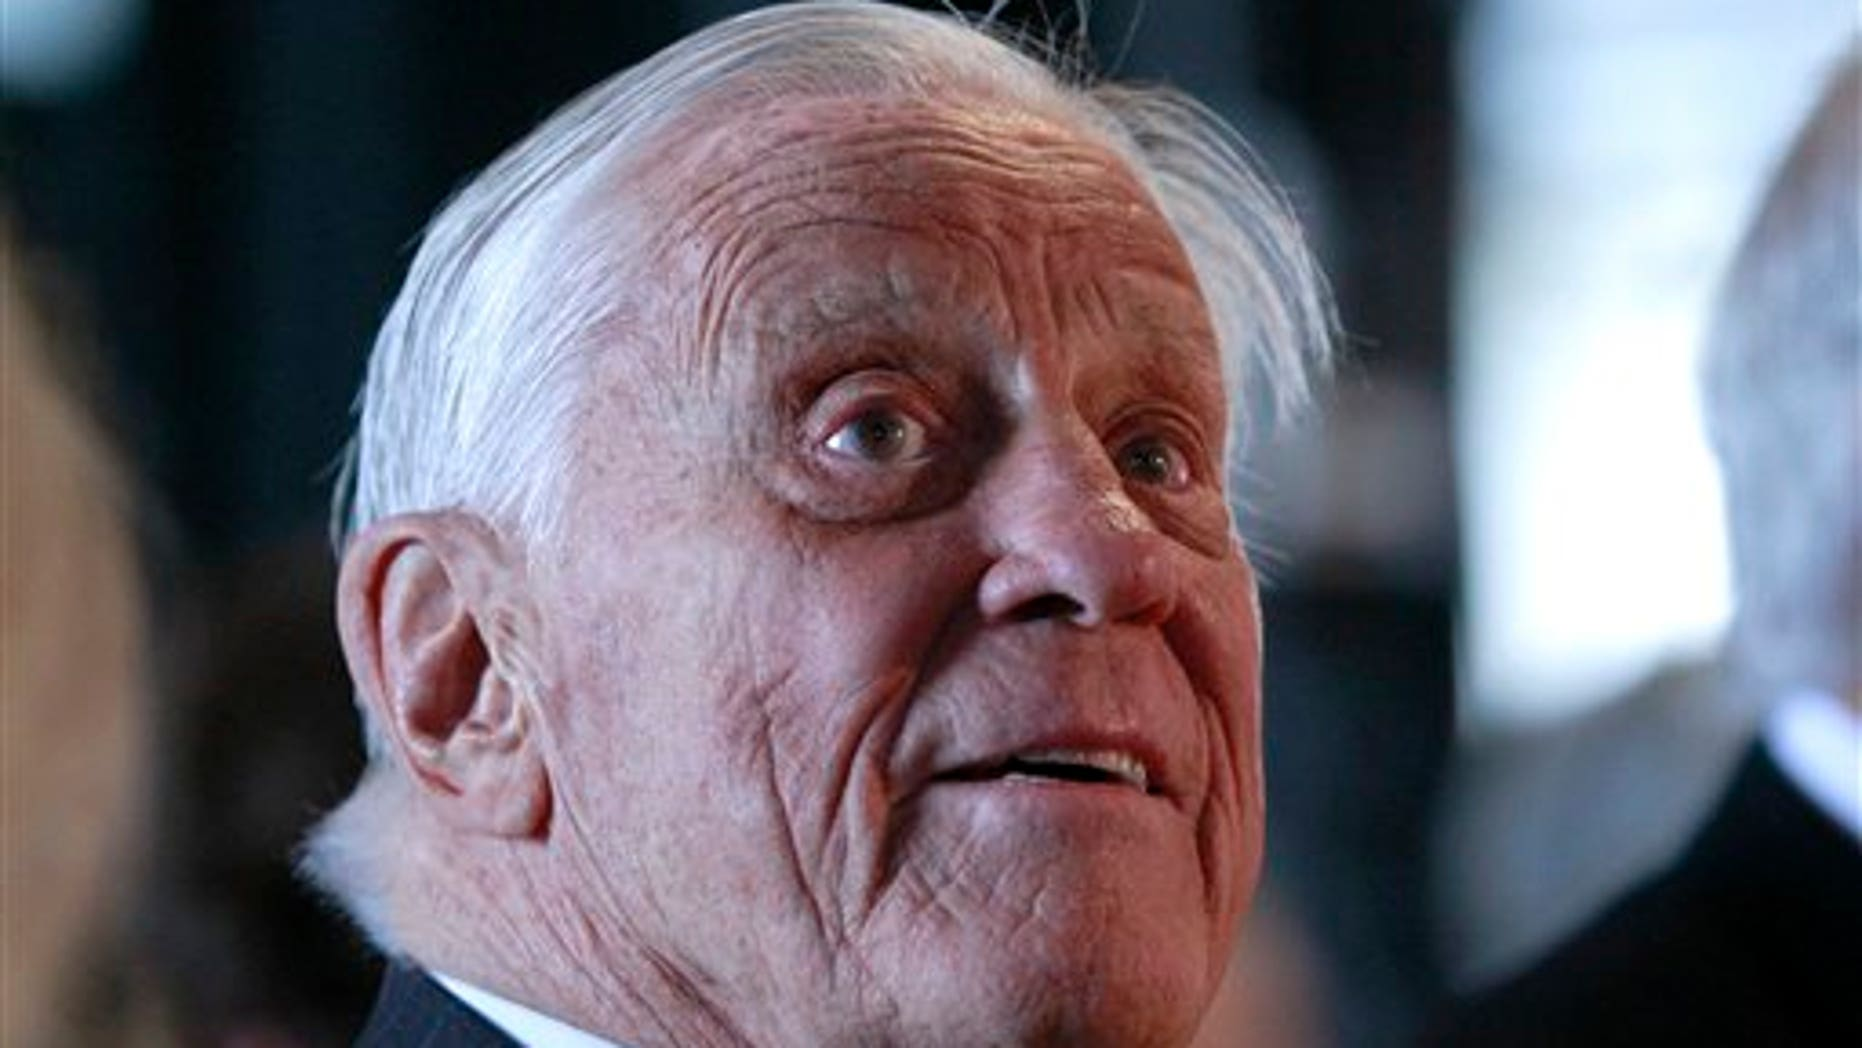 FILE: Ben Bradlee, former executive editor of The Washington Post, listens during an event sponsored by The Washington Post to commemorate the 40th anniversary of Watergate, at the Watergate office building in Washington.